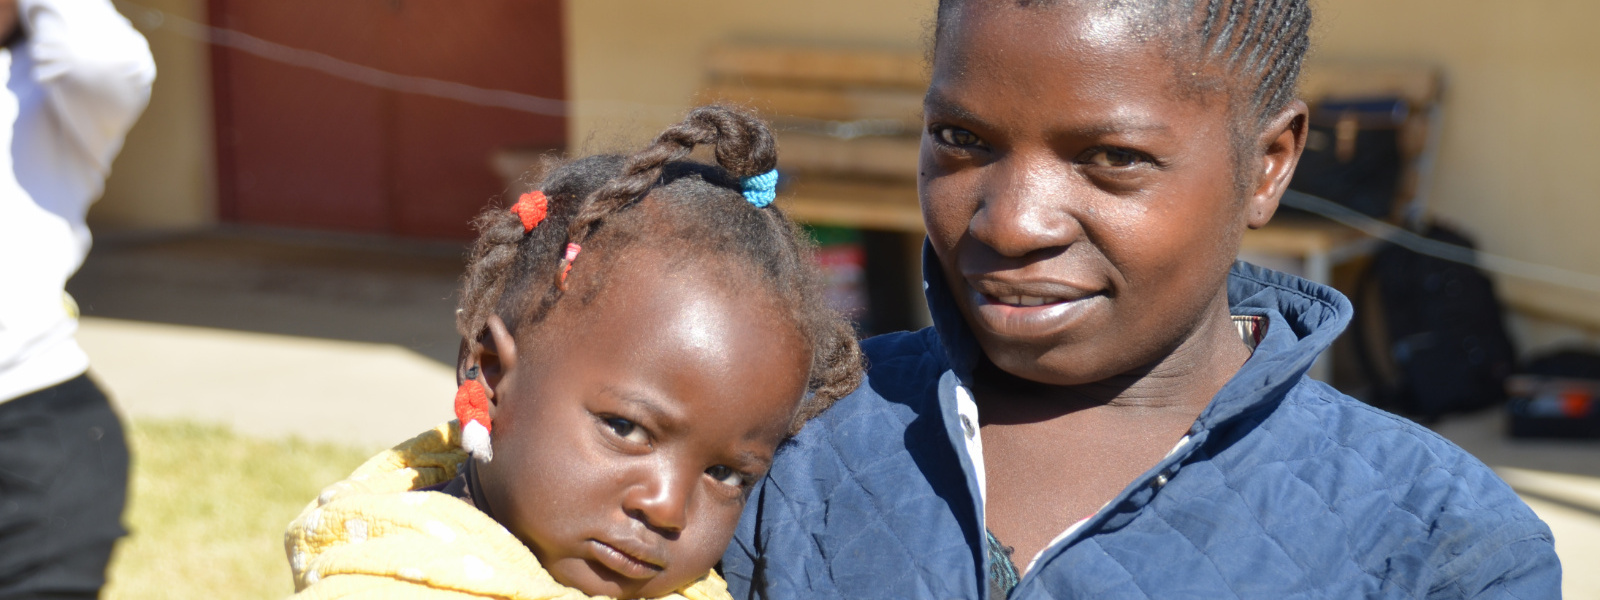 Smiling young woman with pouting child in Angola, client of Hope for Our Sisters